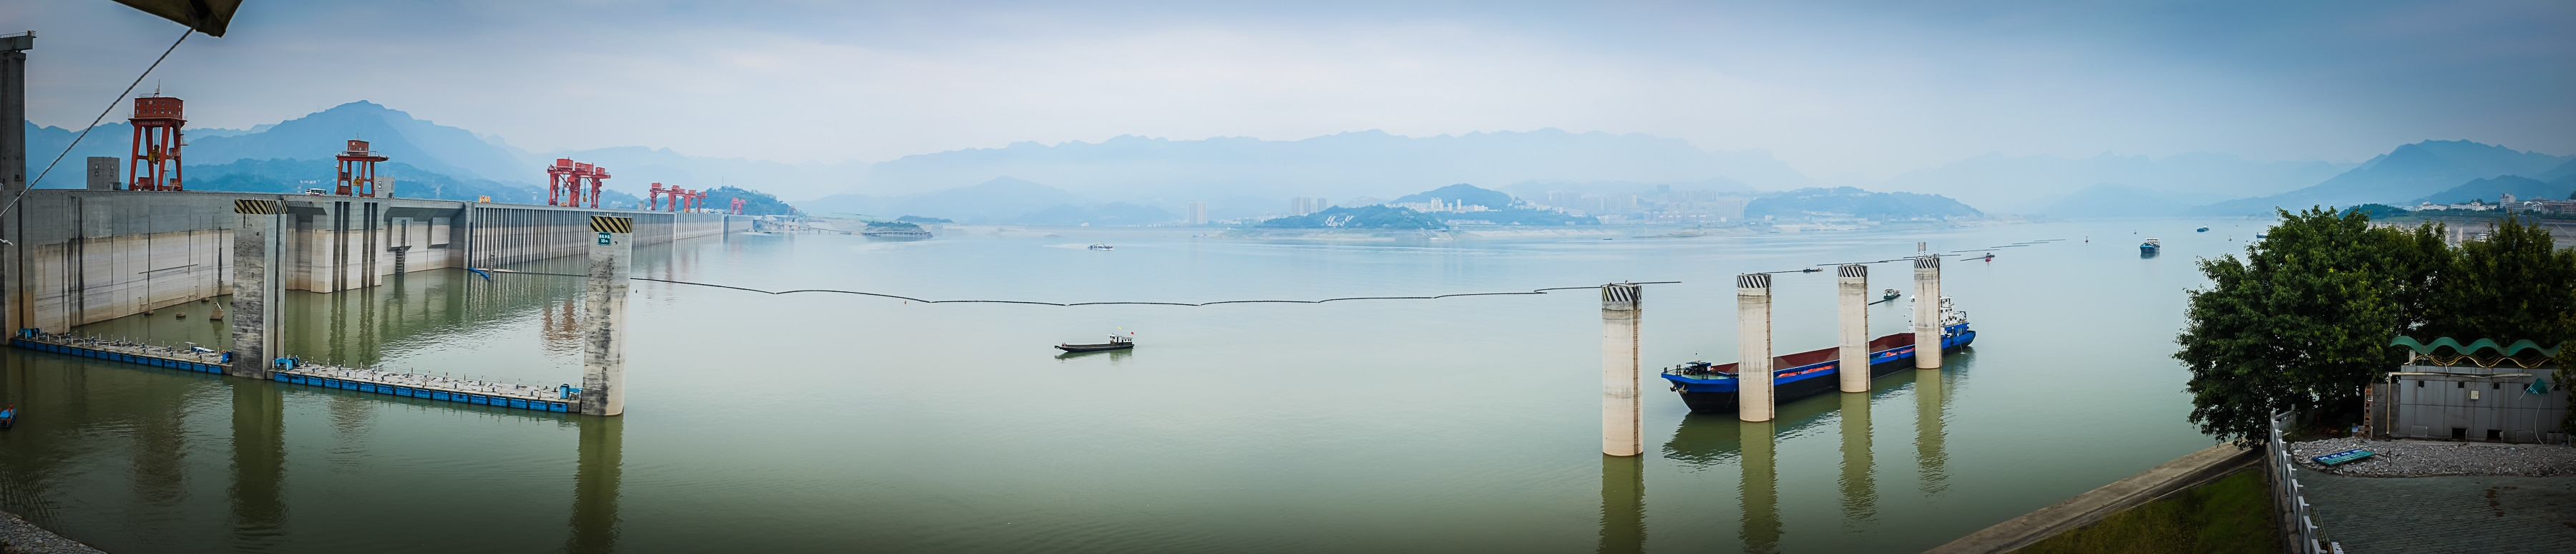 """Three Gorges Dam"" Sandouping, 2018"